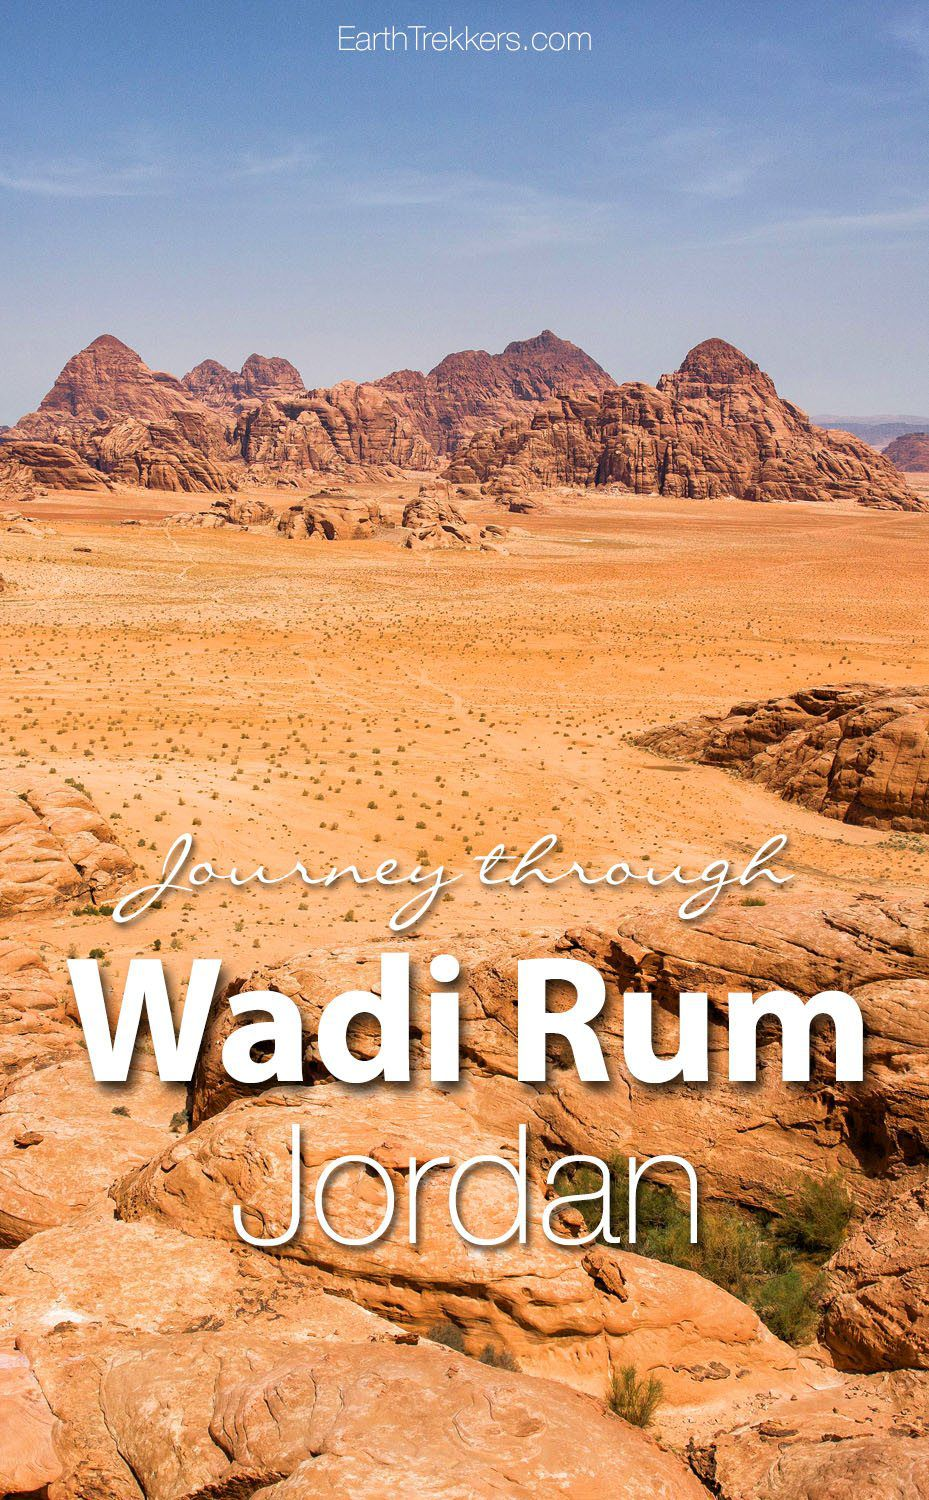 Wadi Rum, Jordan in photographs. #jordan #wadirum #travelphotography